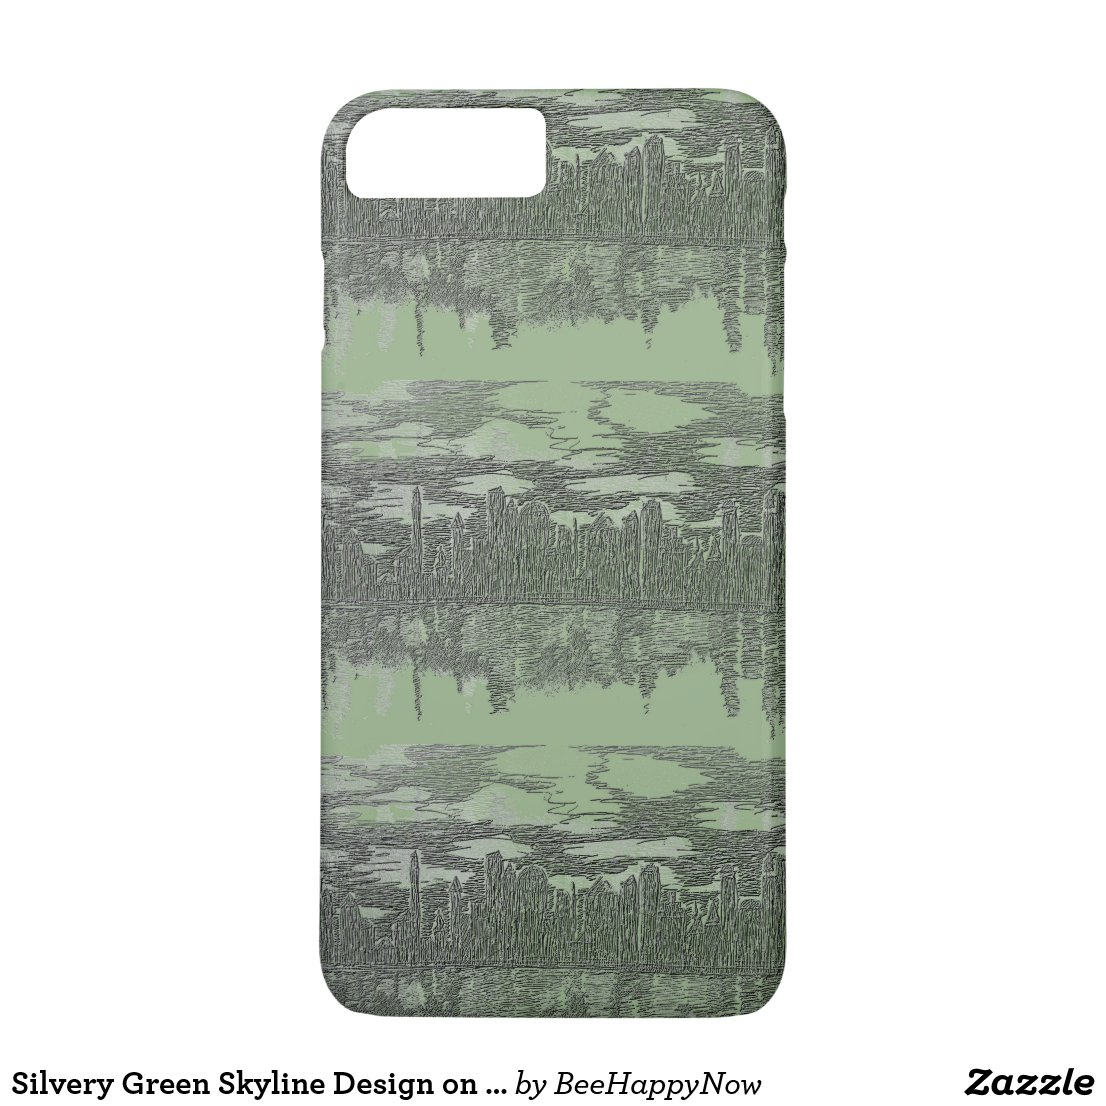 Silvery Green Skyline Design on iPhone 7 Case